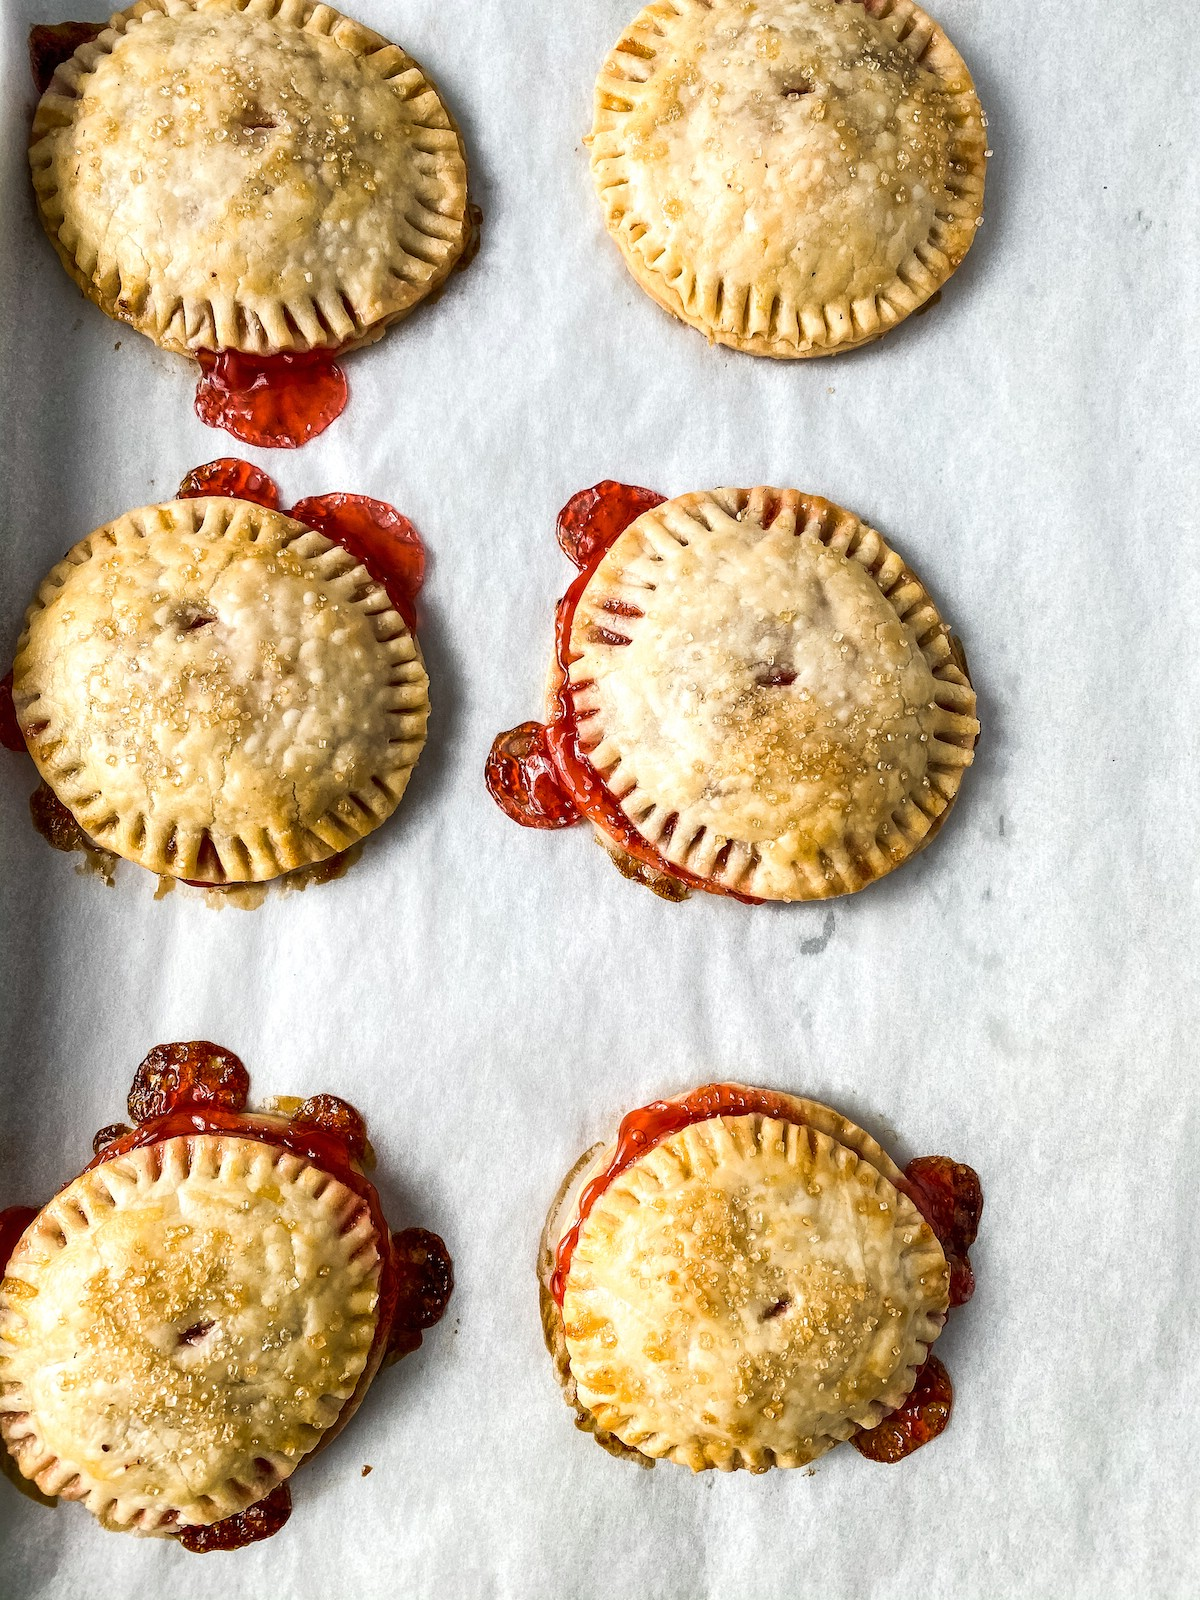 Baked strawberry hand pies on baking sheet